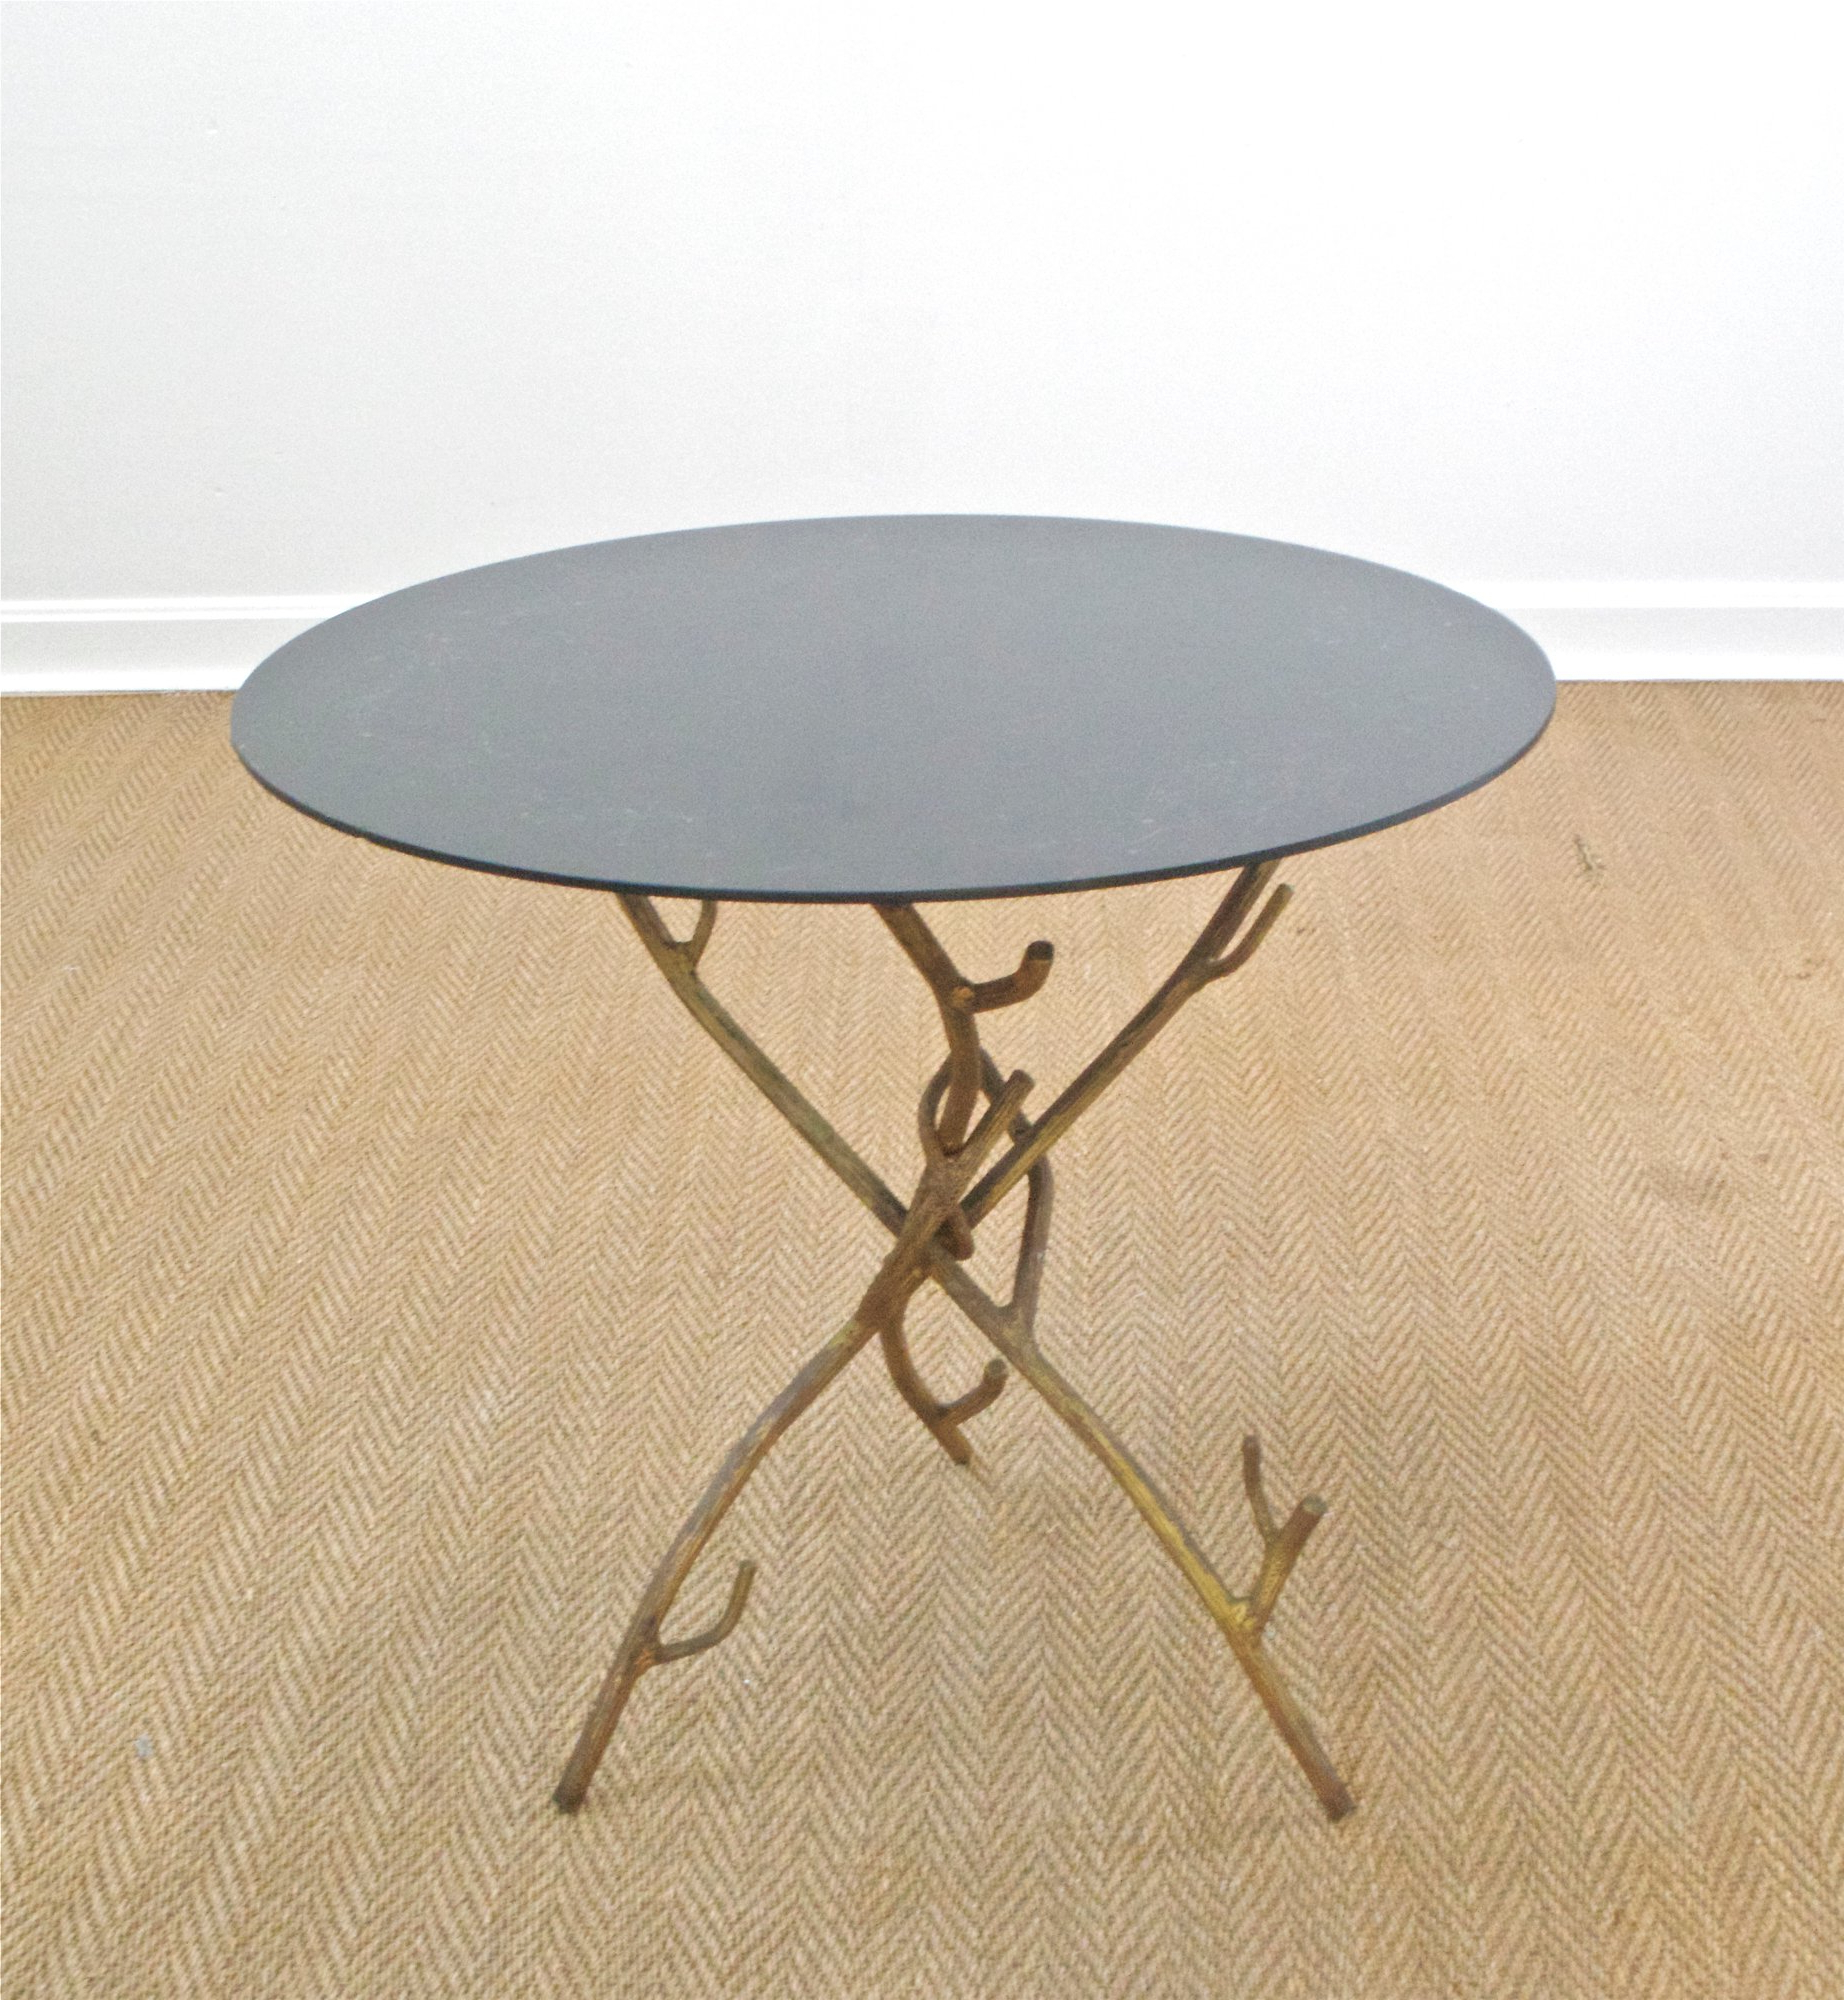 Well Known Faux Bois Cocktail Table For Sale At 1Stdibs With Faux Bois Coffee Tables (View 18 of 20)